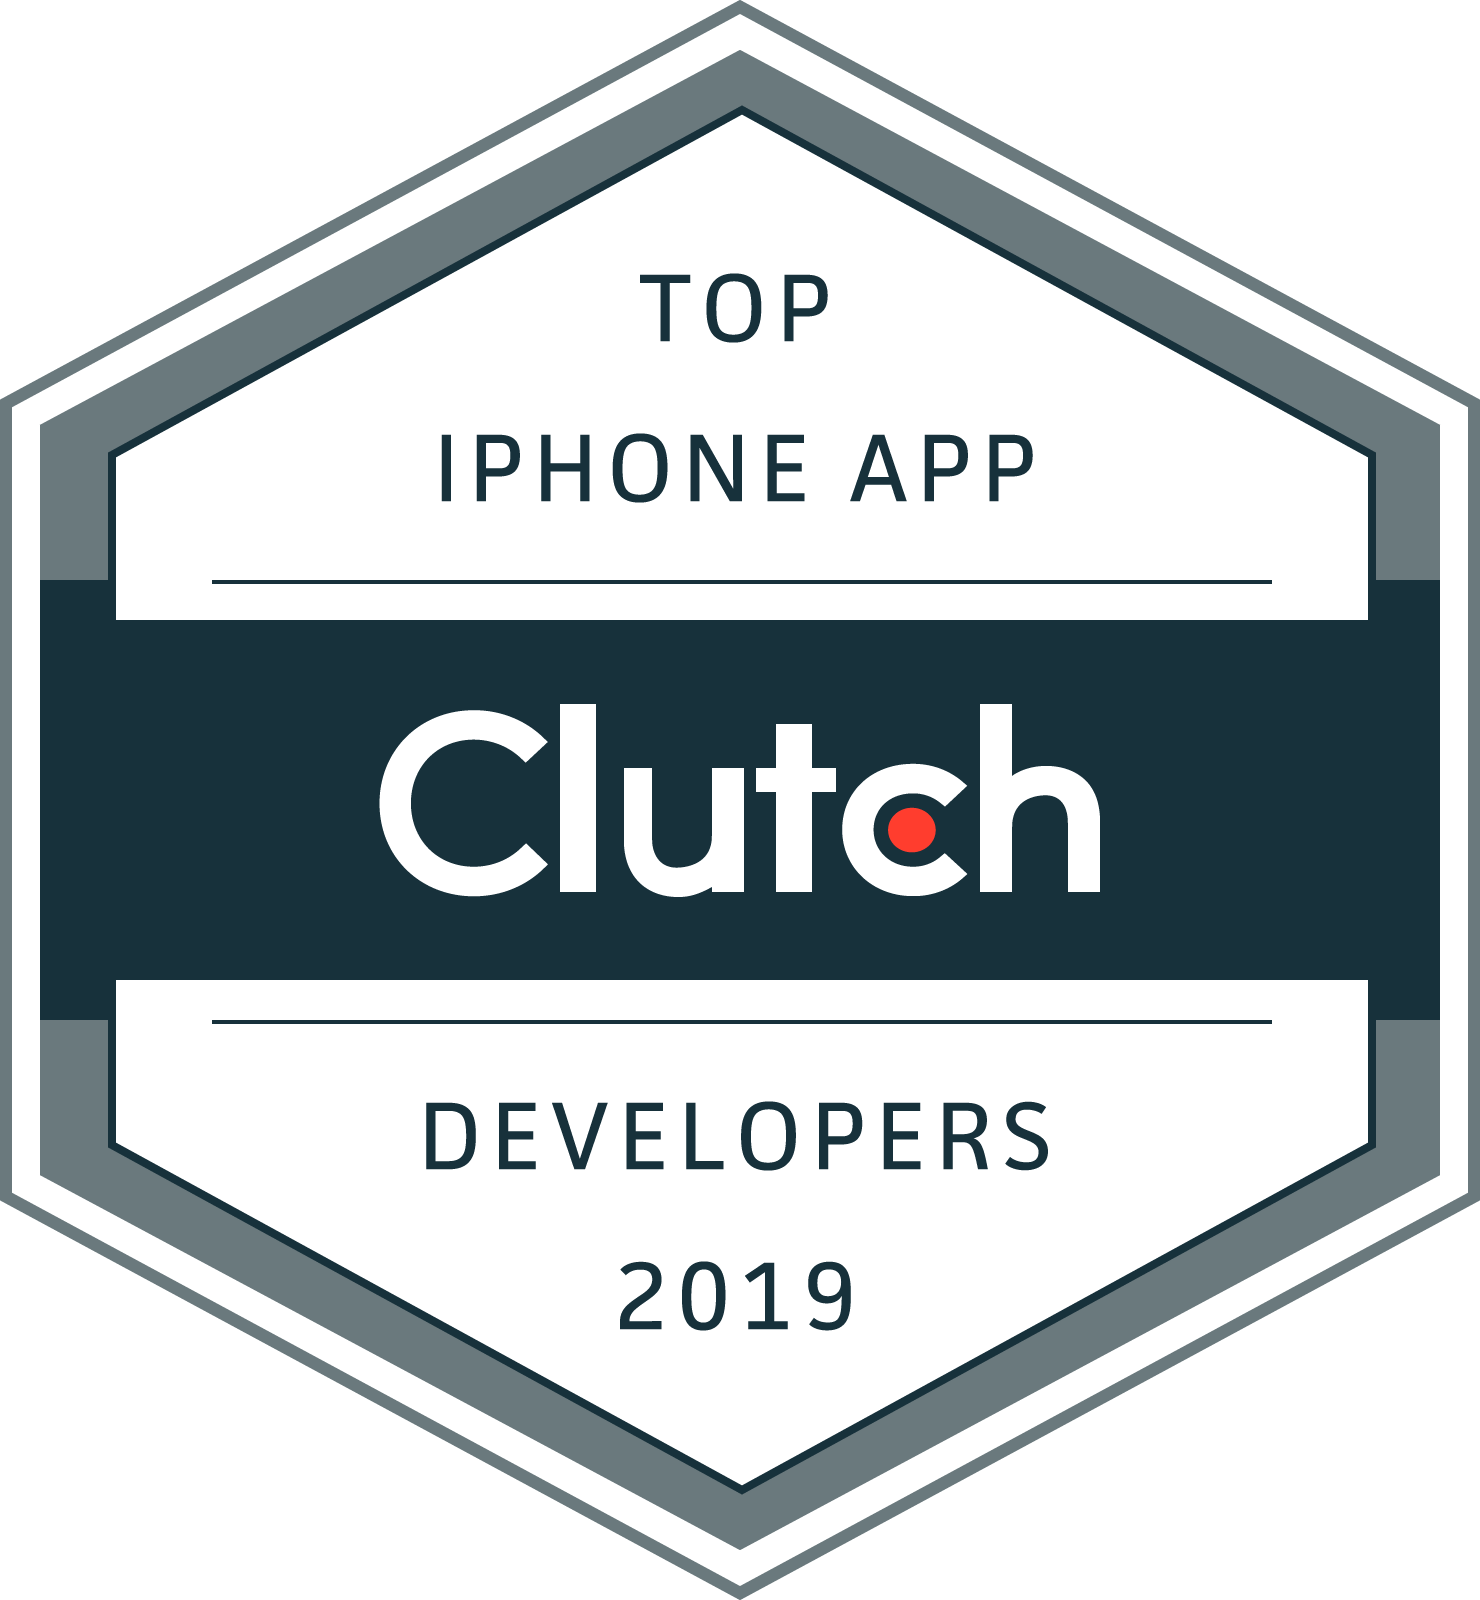 Top iPhone App Developers